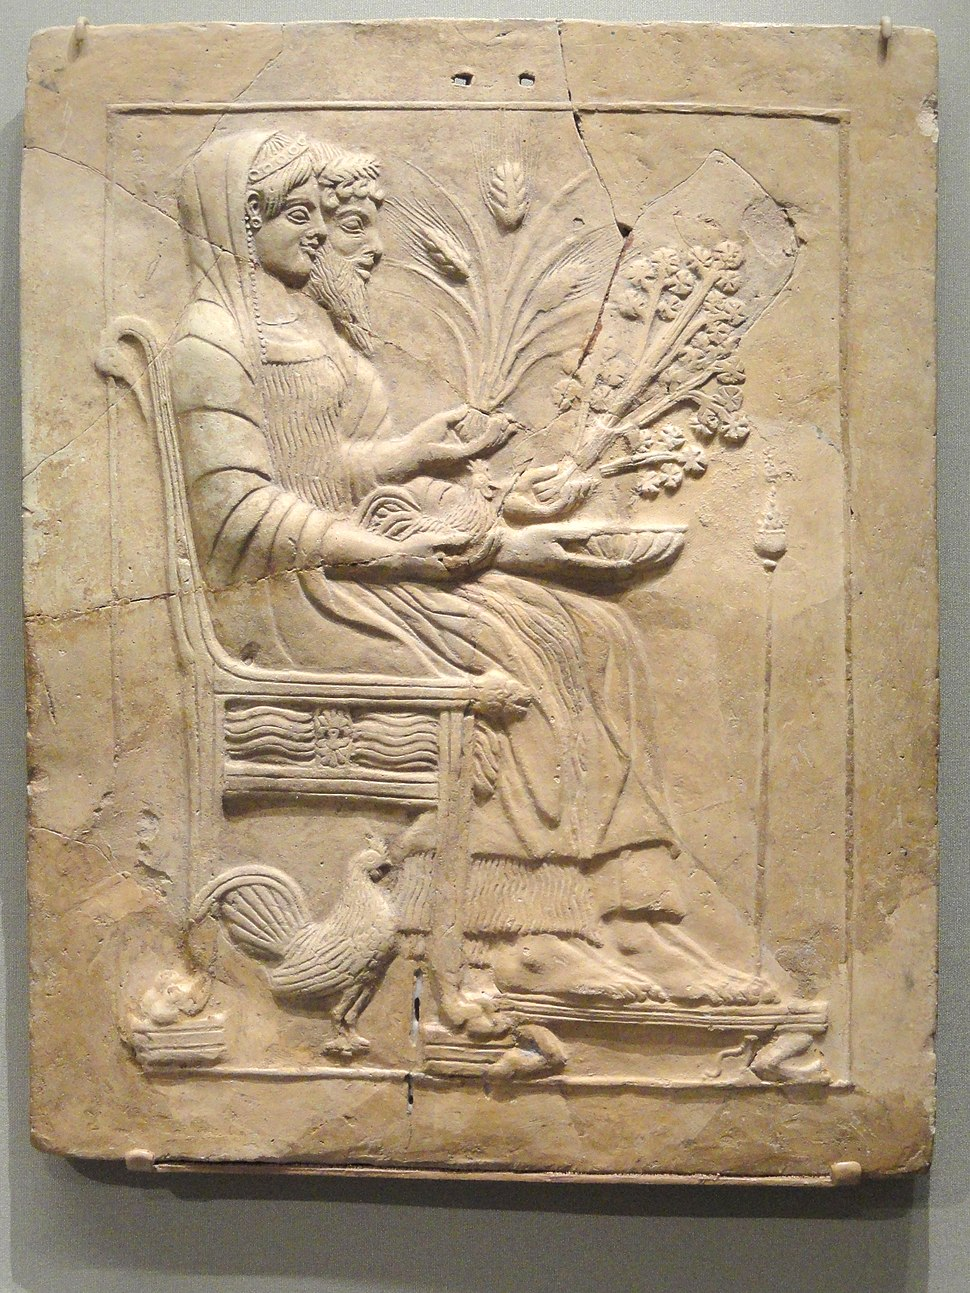 Pinax with Persephone and Hades Enthroned, 500-450 BC, Greek, Locri Epizephirii, Mannella district, Sanctuary of Persephone, terracotta - Cleveland Museum of Art - DSC08242